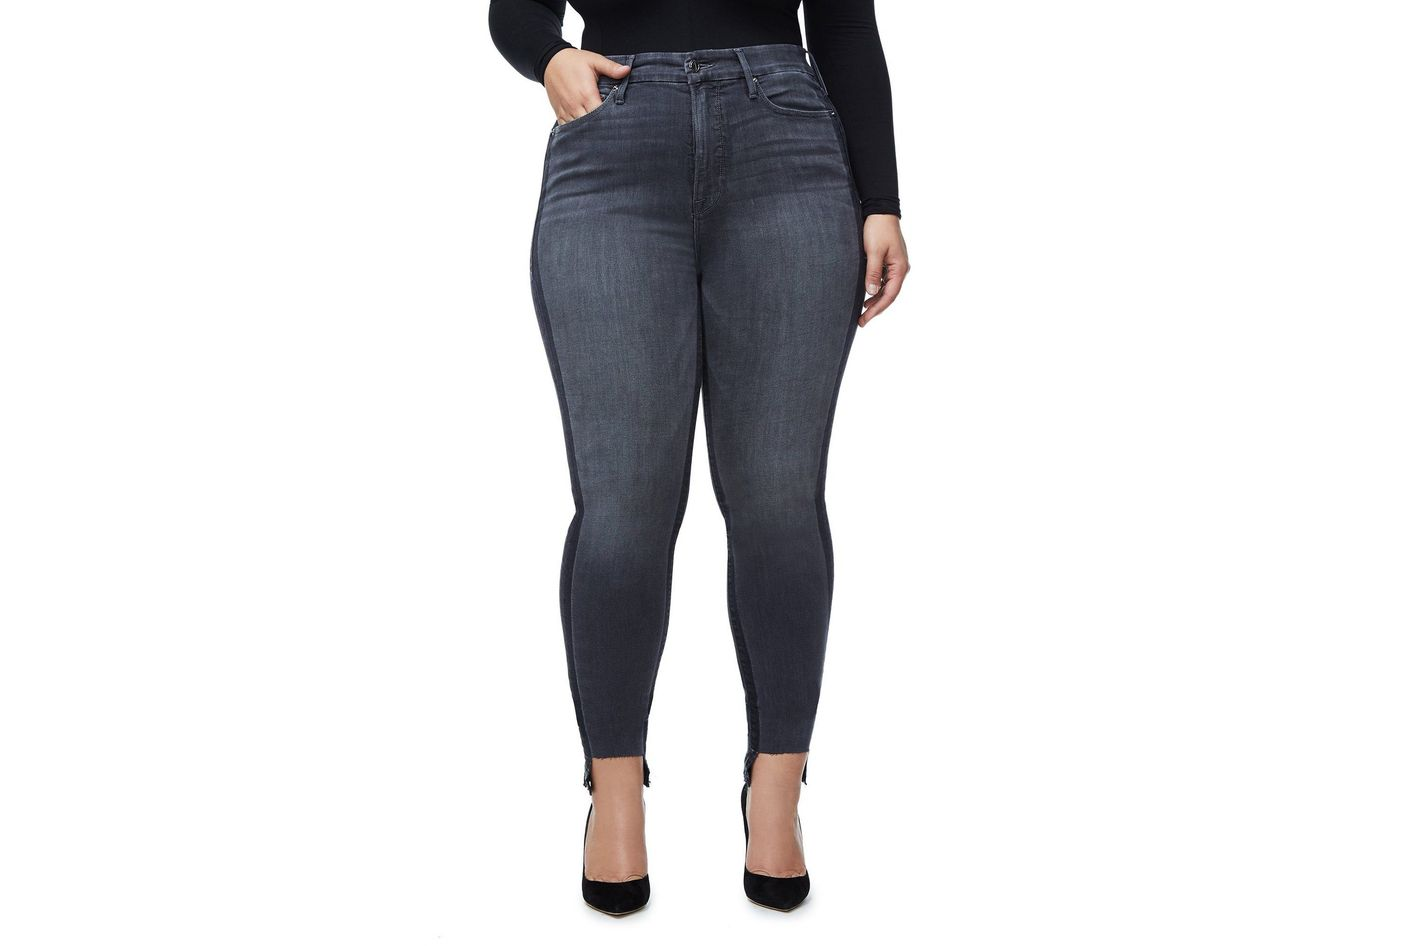 44943b8fe6801 Best plus-size jeans for petite women. Good American Good Legs Shadow  Tunnel Hem